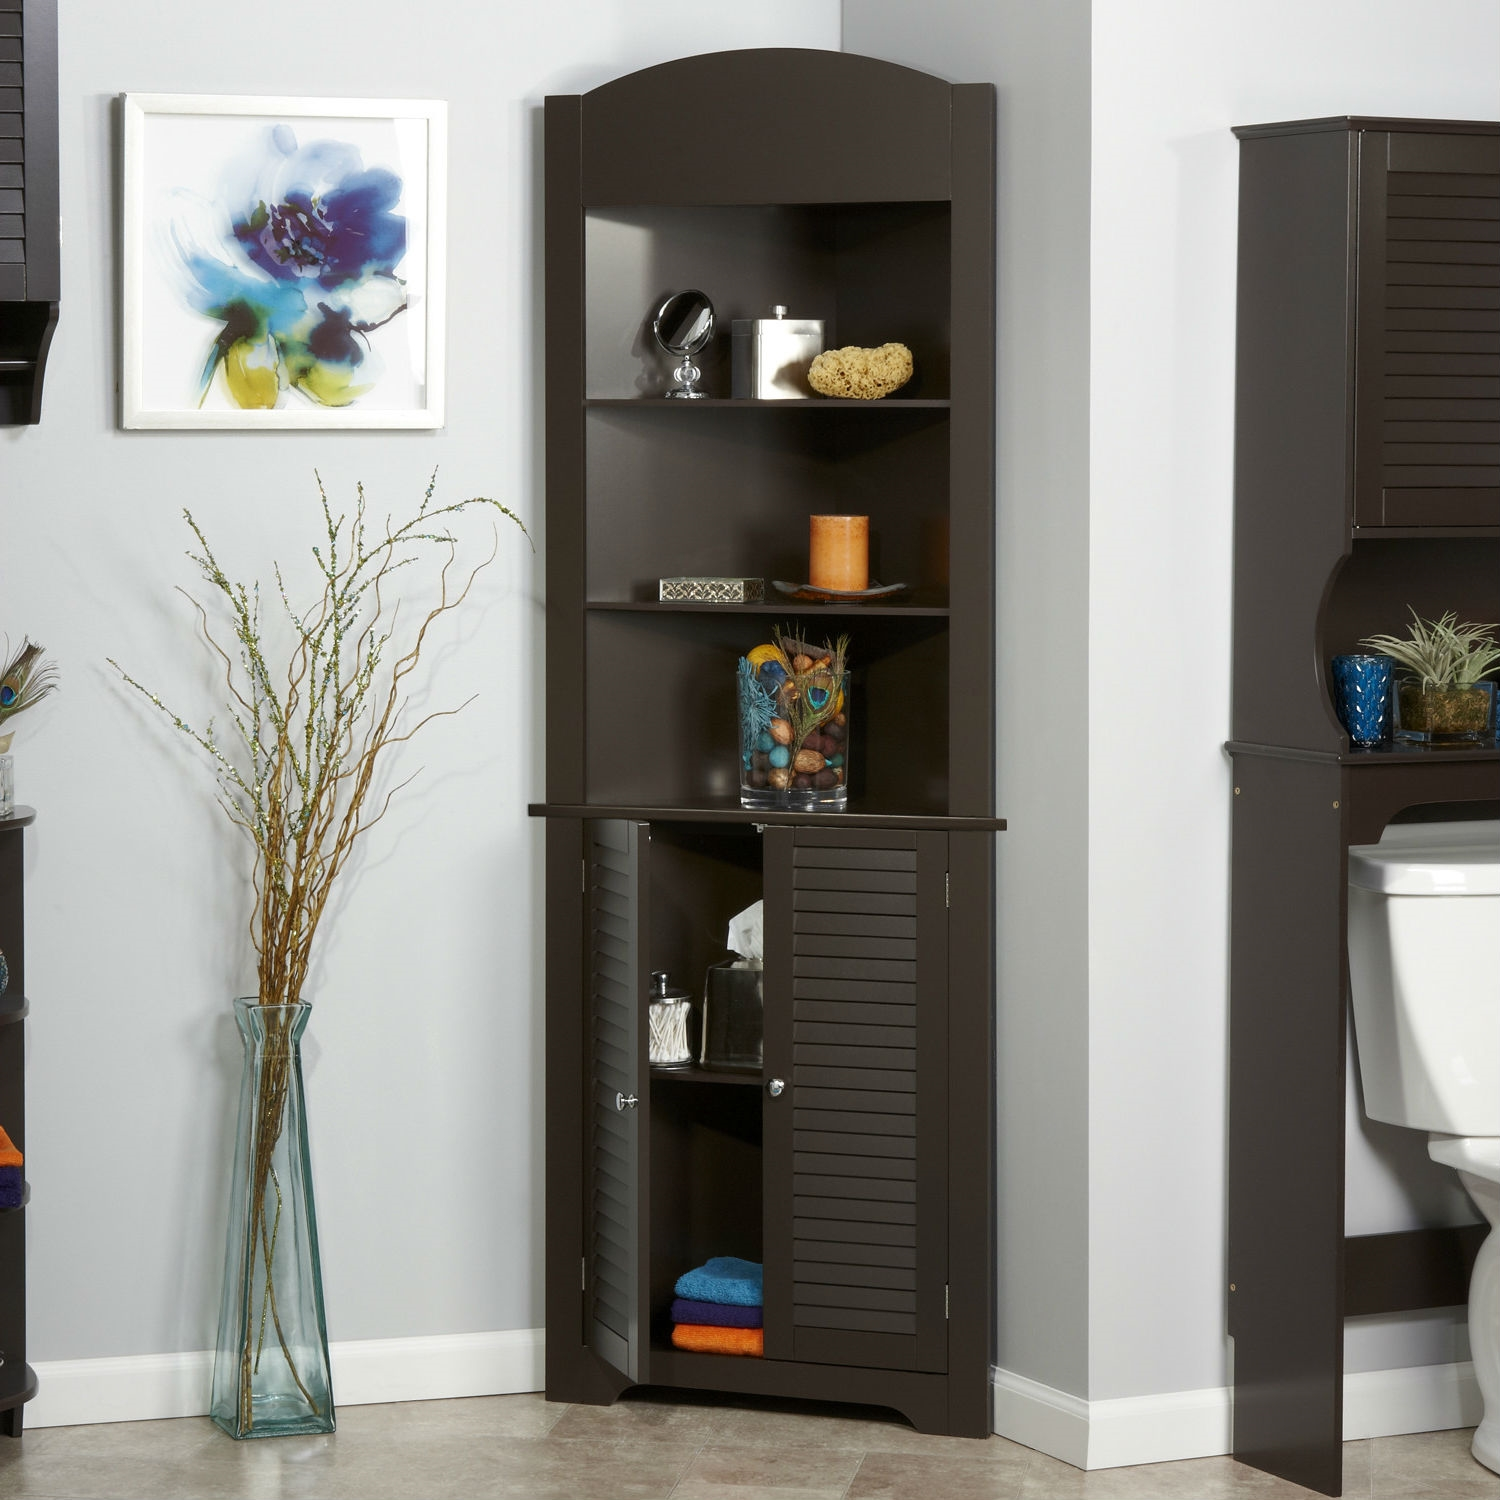 Espresso bathroom linen tower corner towel storage cabinet with 3 open shelves Bathroom corner cabinet storage